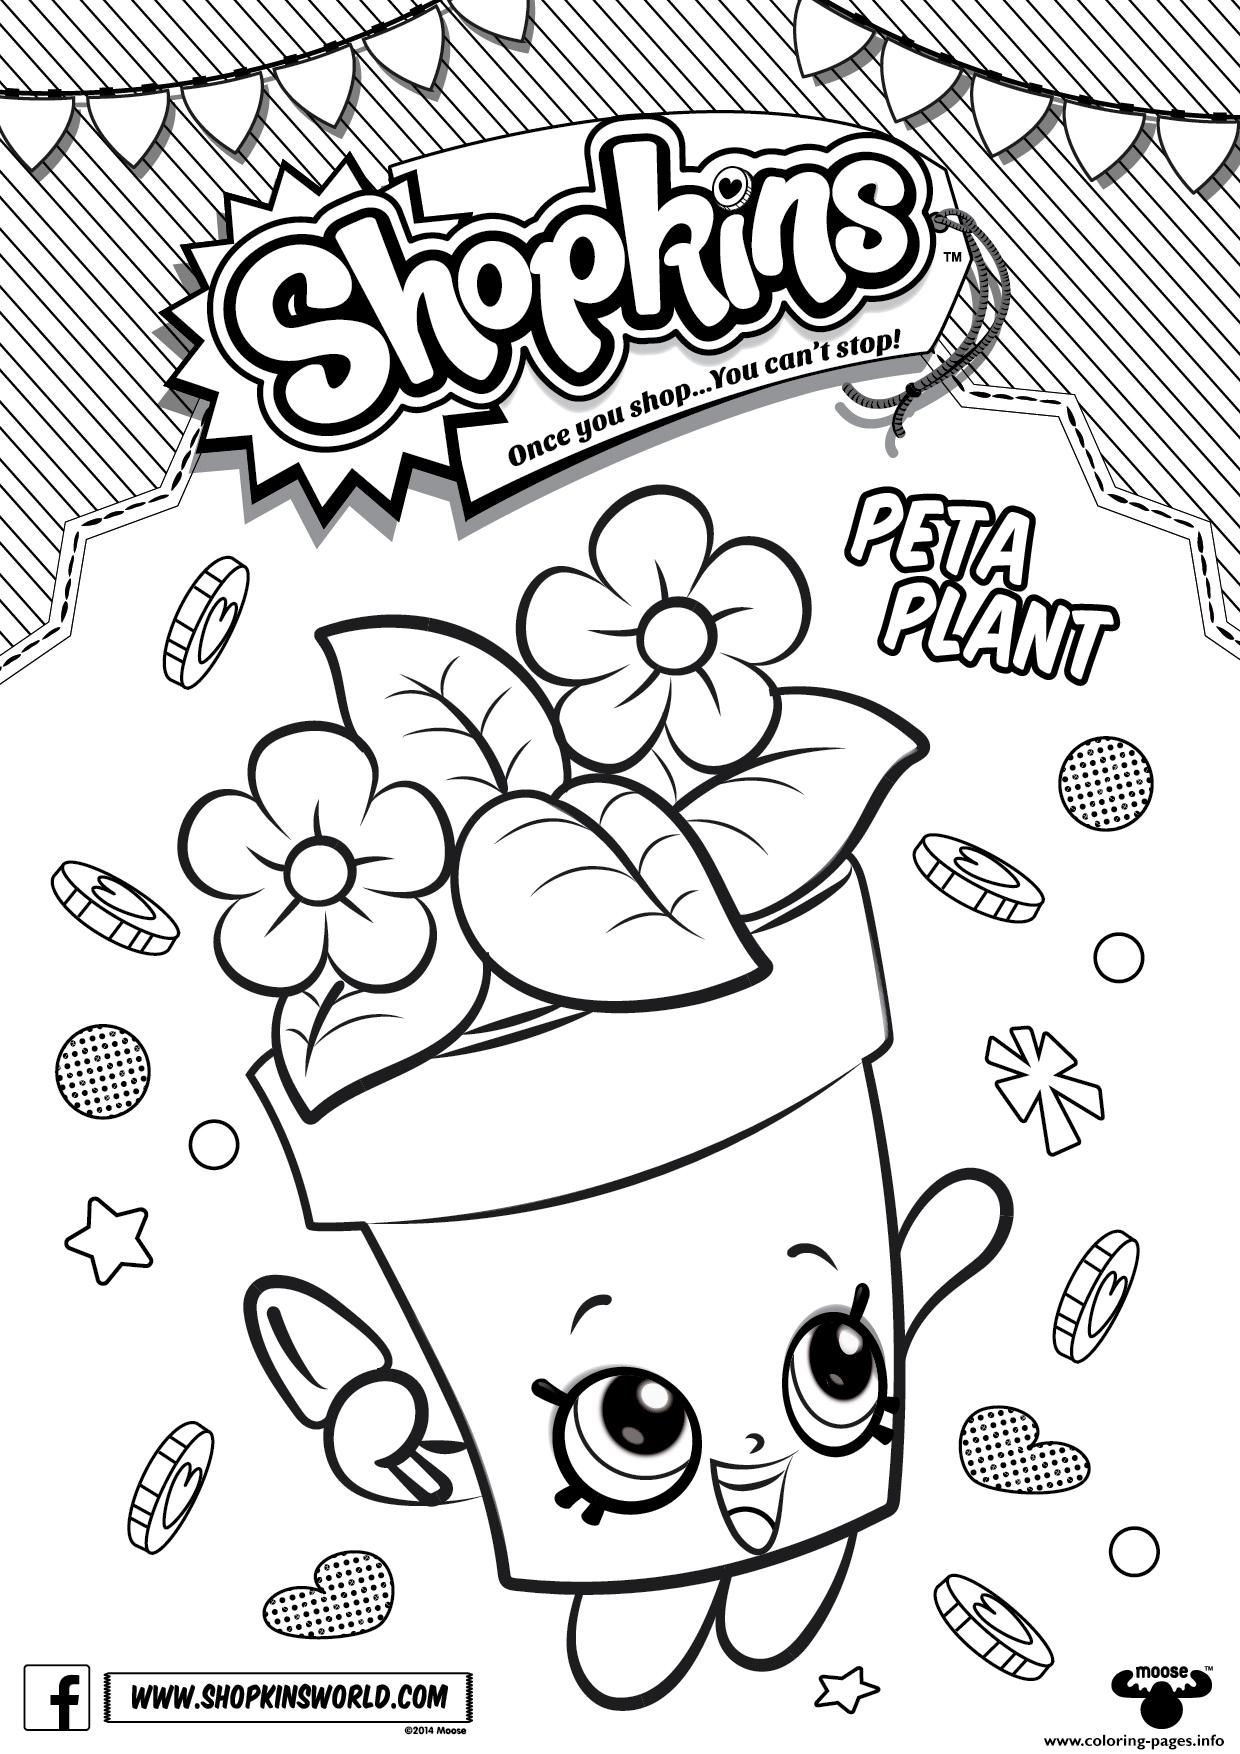 Print Shopkins Peta Plant Coloring Pages Printables Pinterest